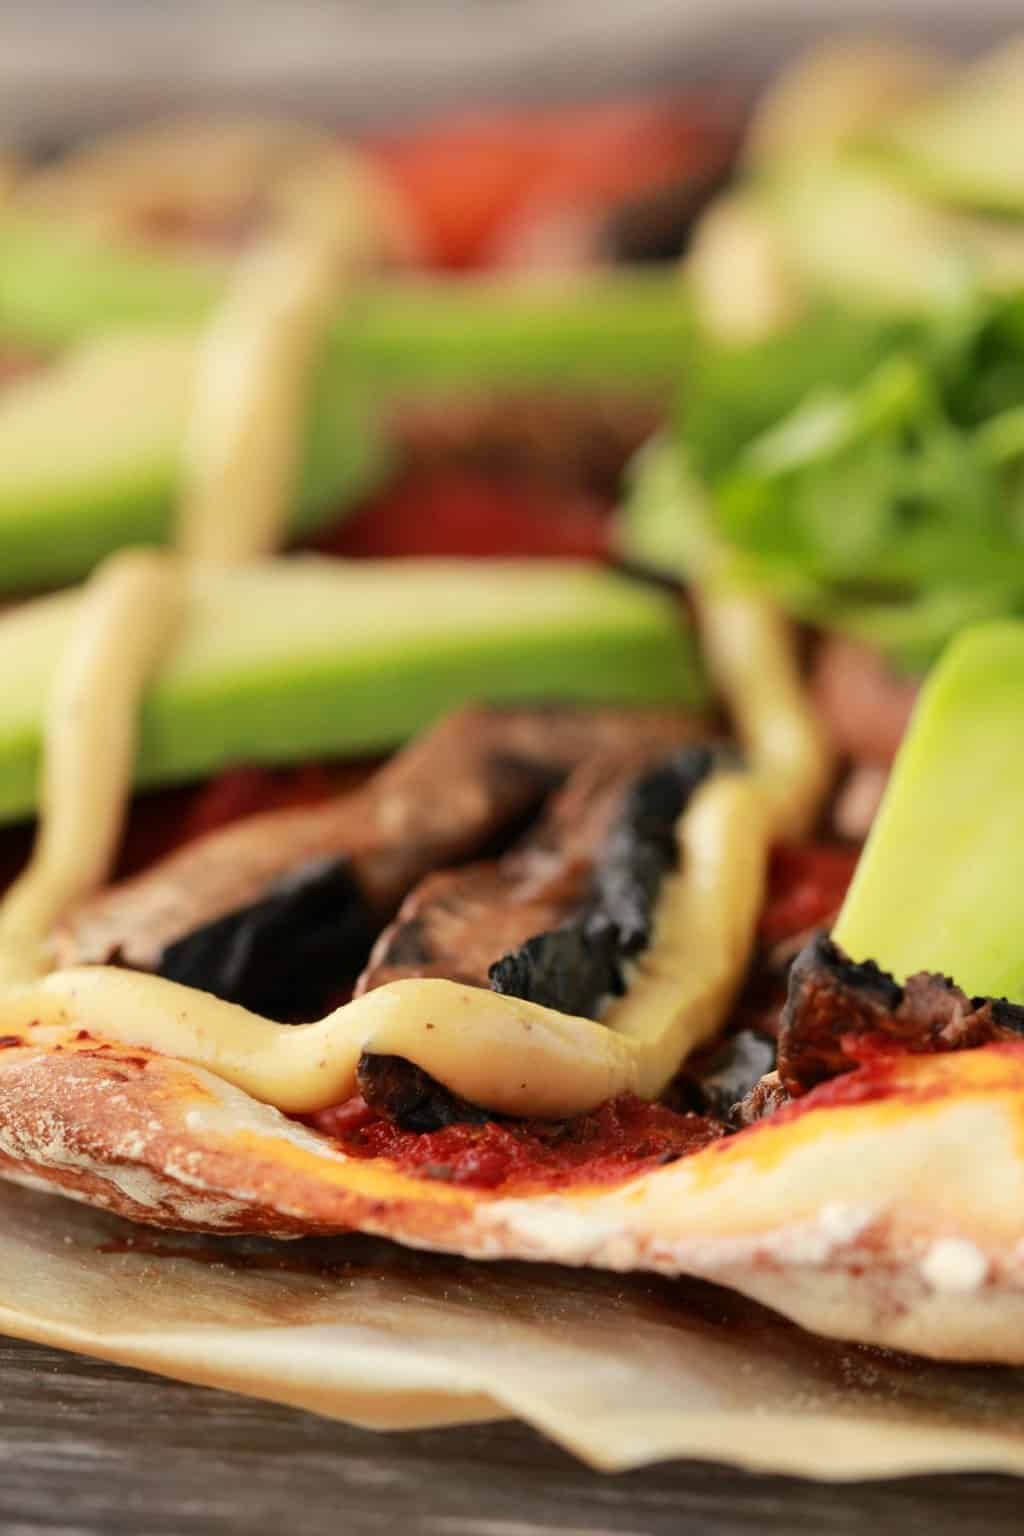 Close up of homemade pizza with tomato sauce, black mushrooms, avocado and drizzled cashew cheese